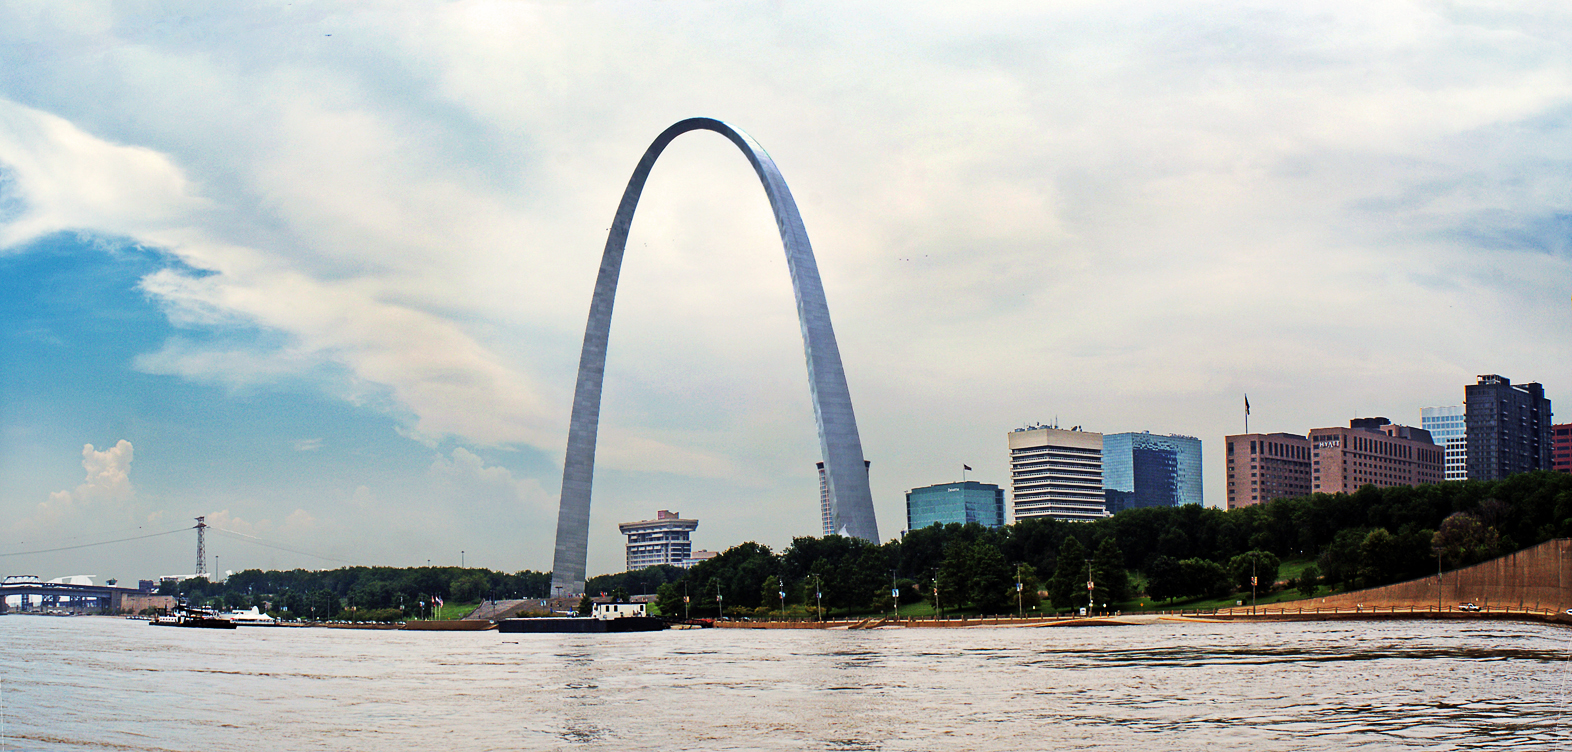 More than a thousand words st louis arch for St louis architecture